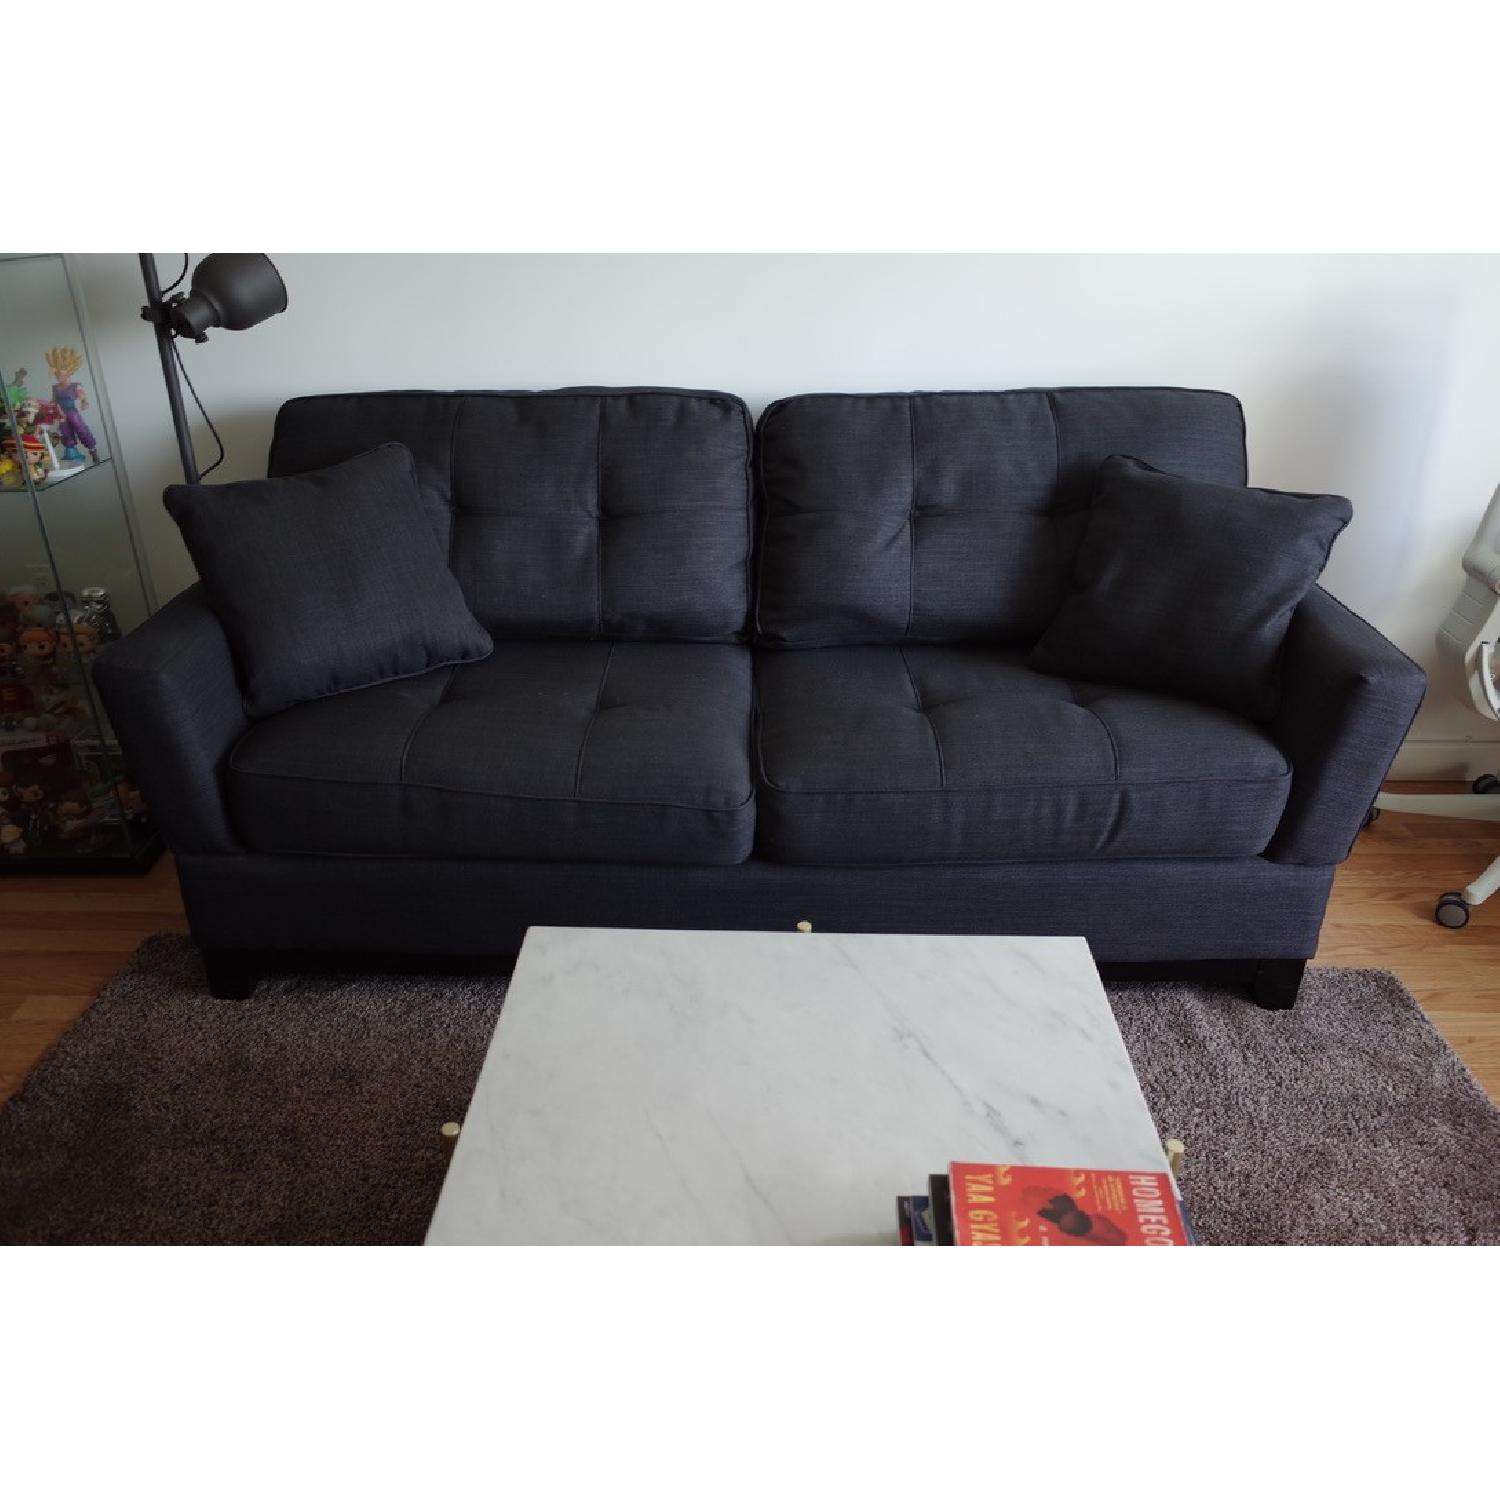 Jennifer Furniture Opus Sofa-2